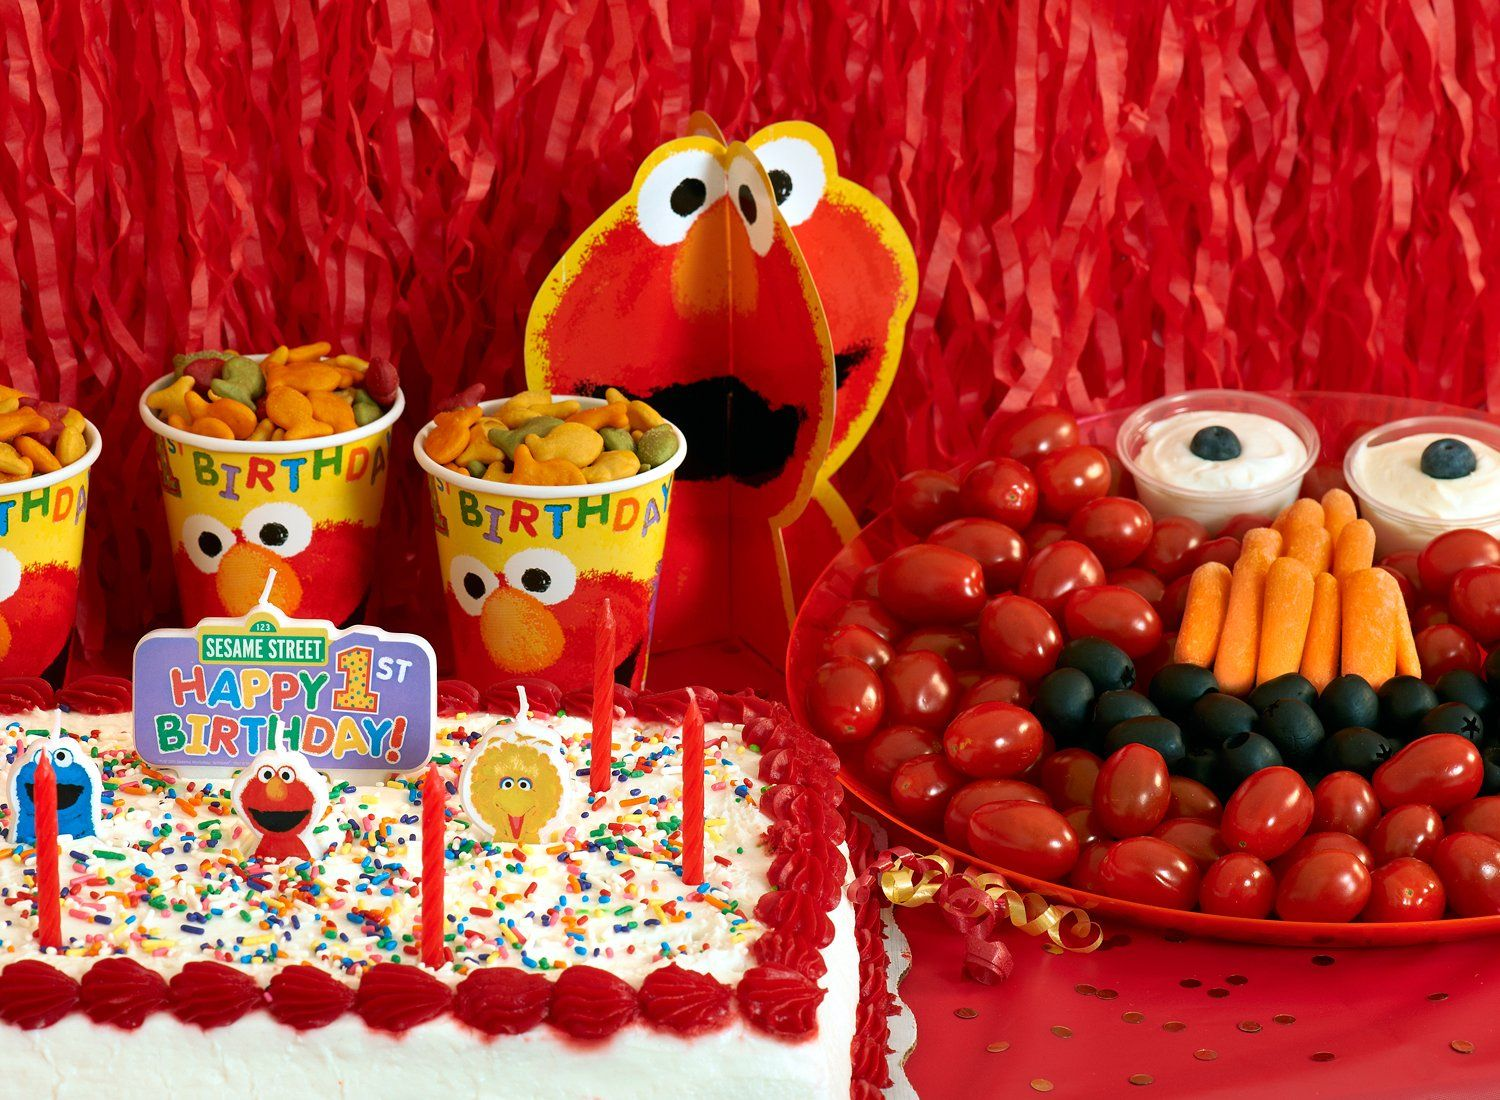 Elmo 1st birthday party ideas birthday party sesamestreet - Coolest Elmo Birthday Party And Sesame Street Party Ideas